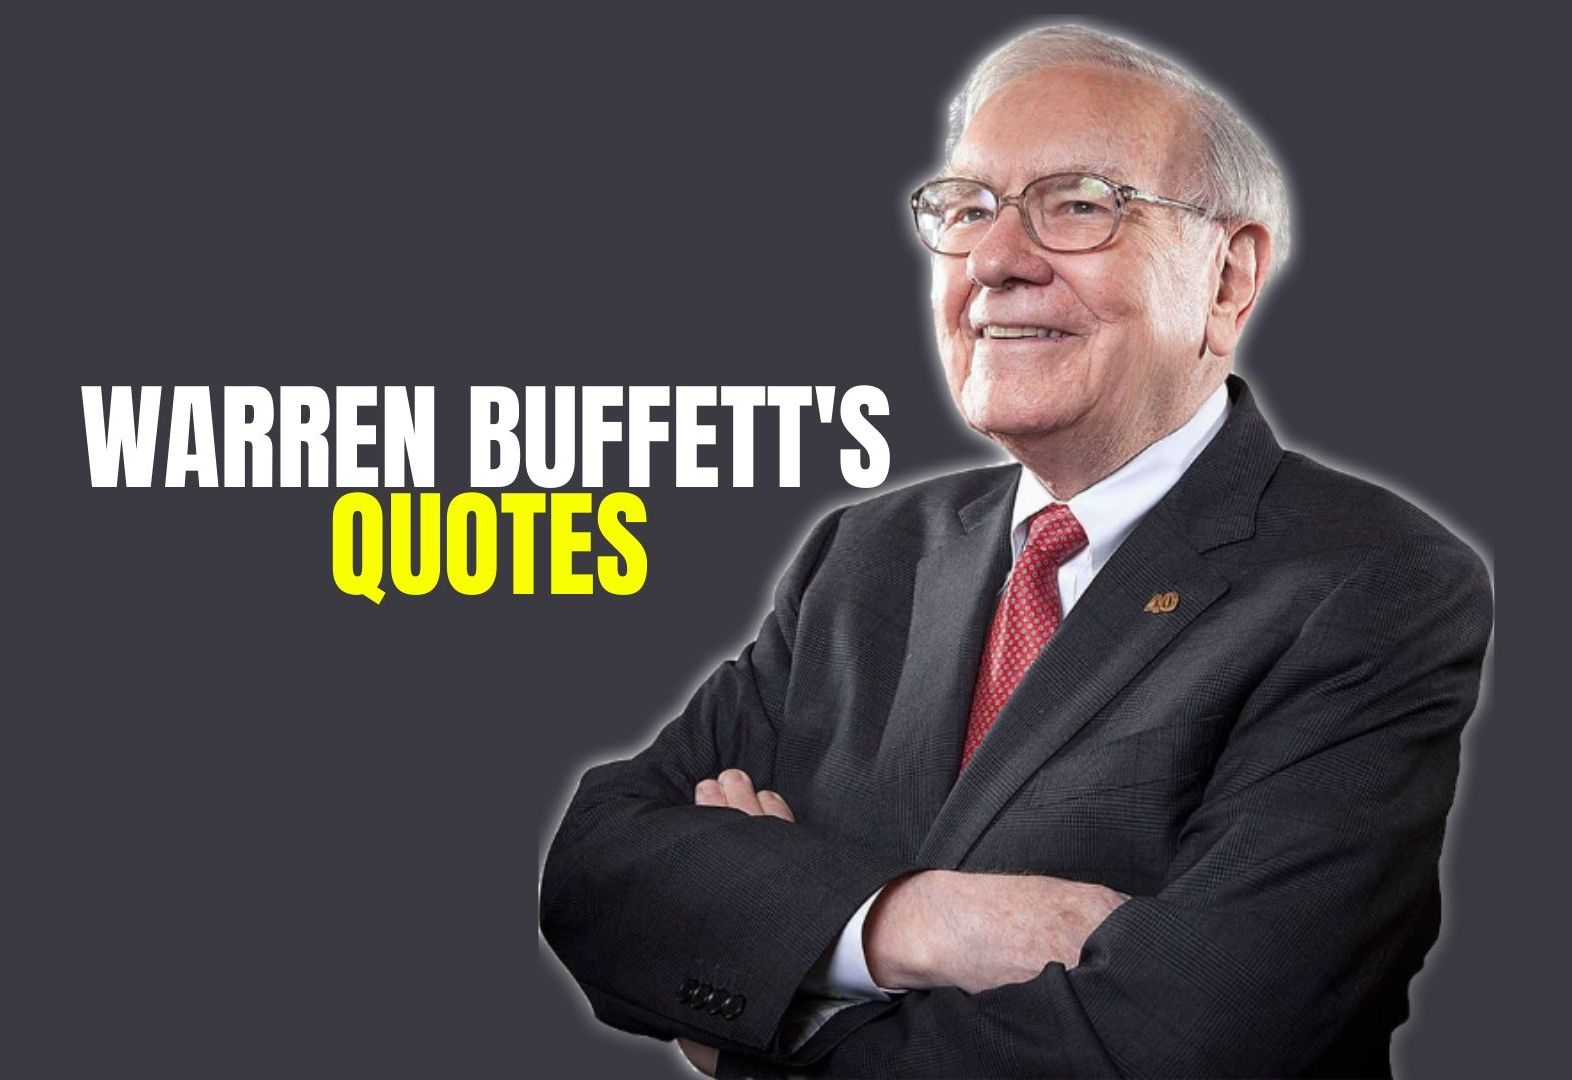 Warren Buffett Quotes about business